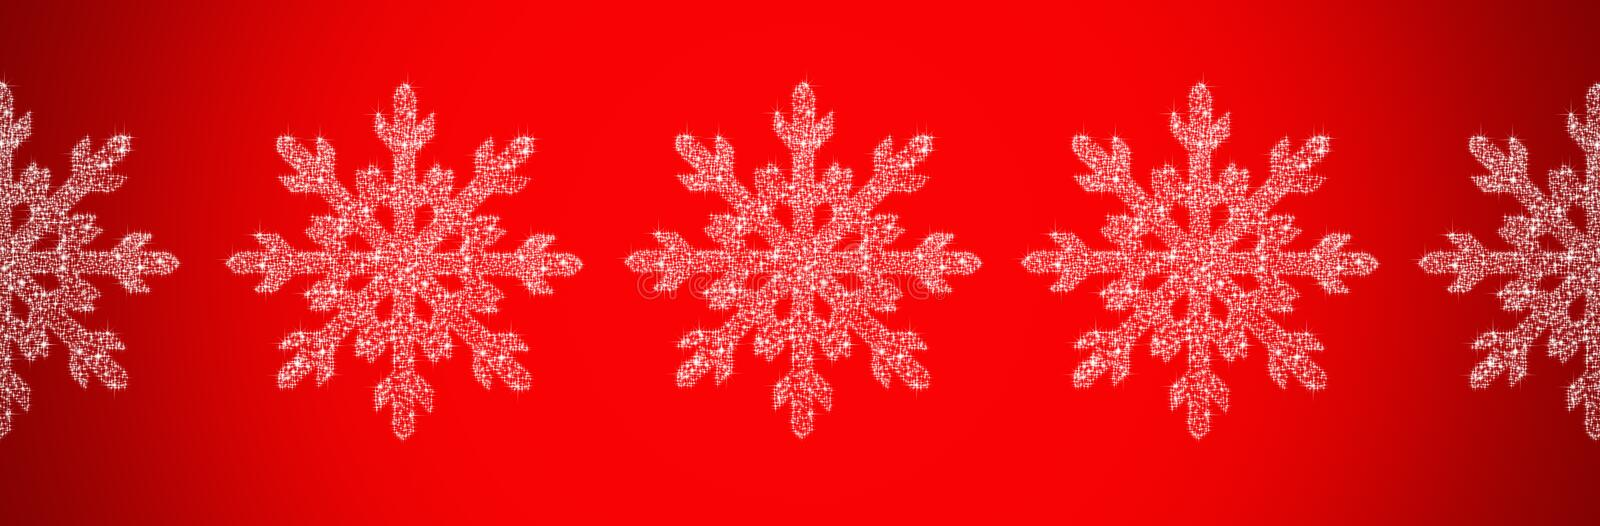 White snowflakes on a red background. Happy New year and merry Christmas. Winter holidays, holidays. stock illustration